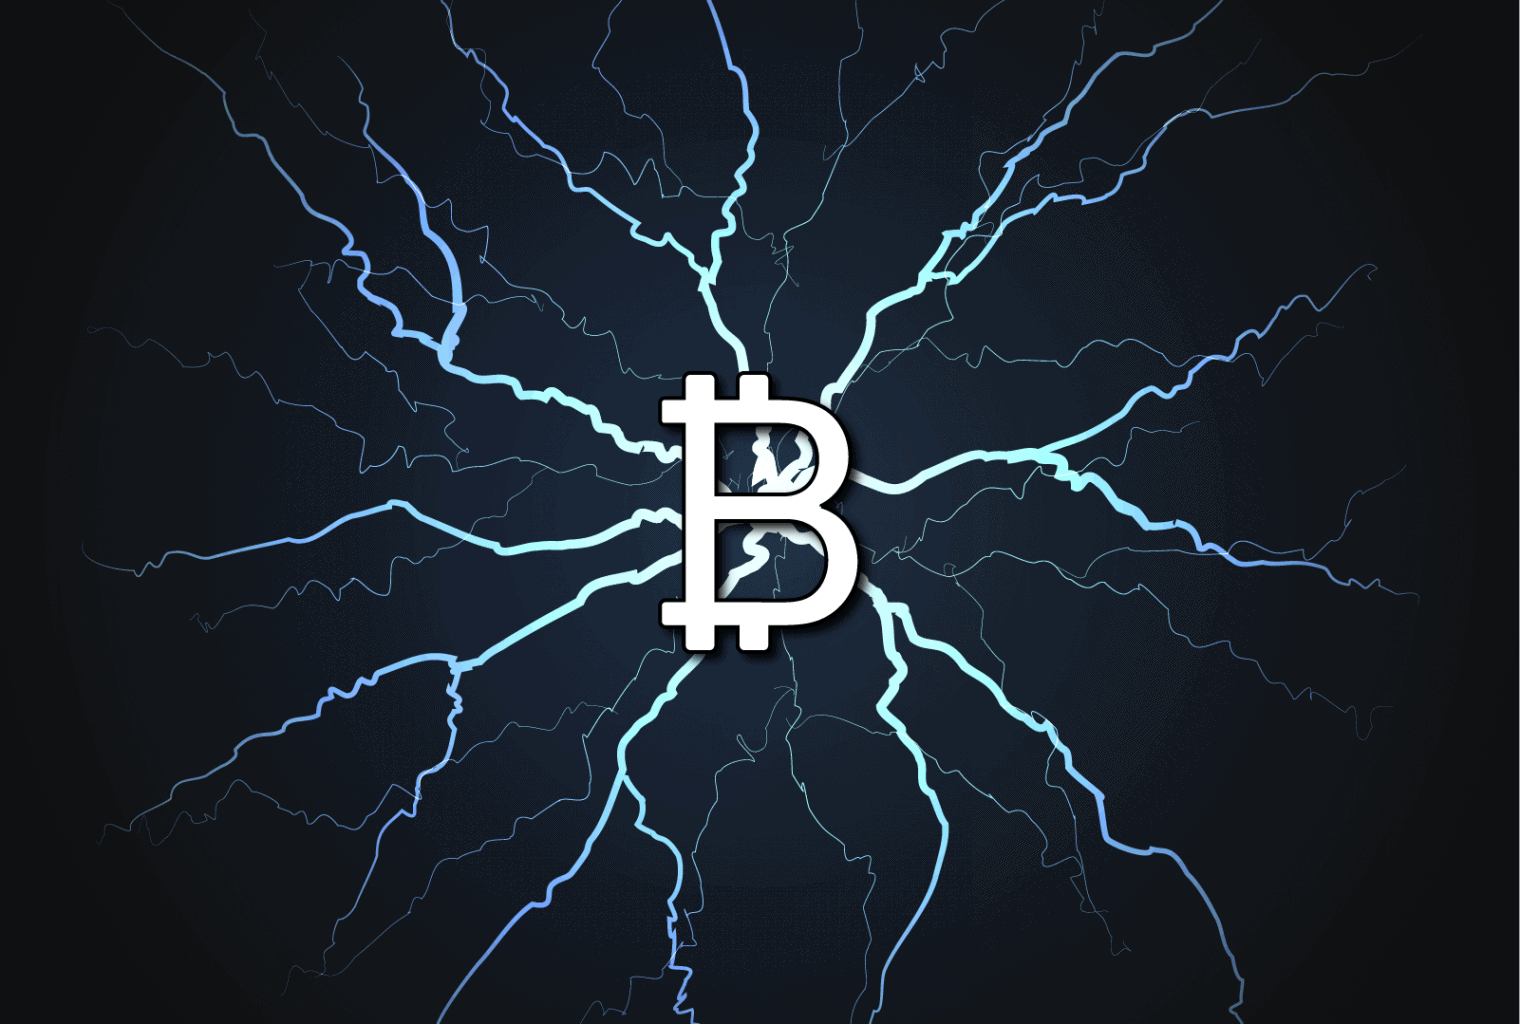 Lighting Network Losing Payment Channels Due To Dwindling Rewards